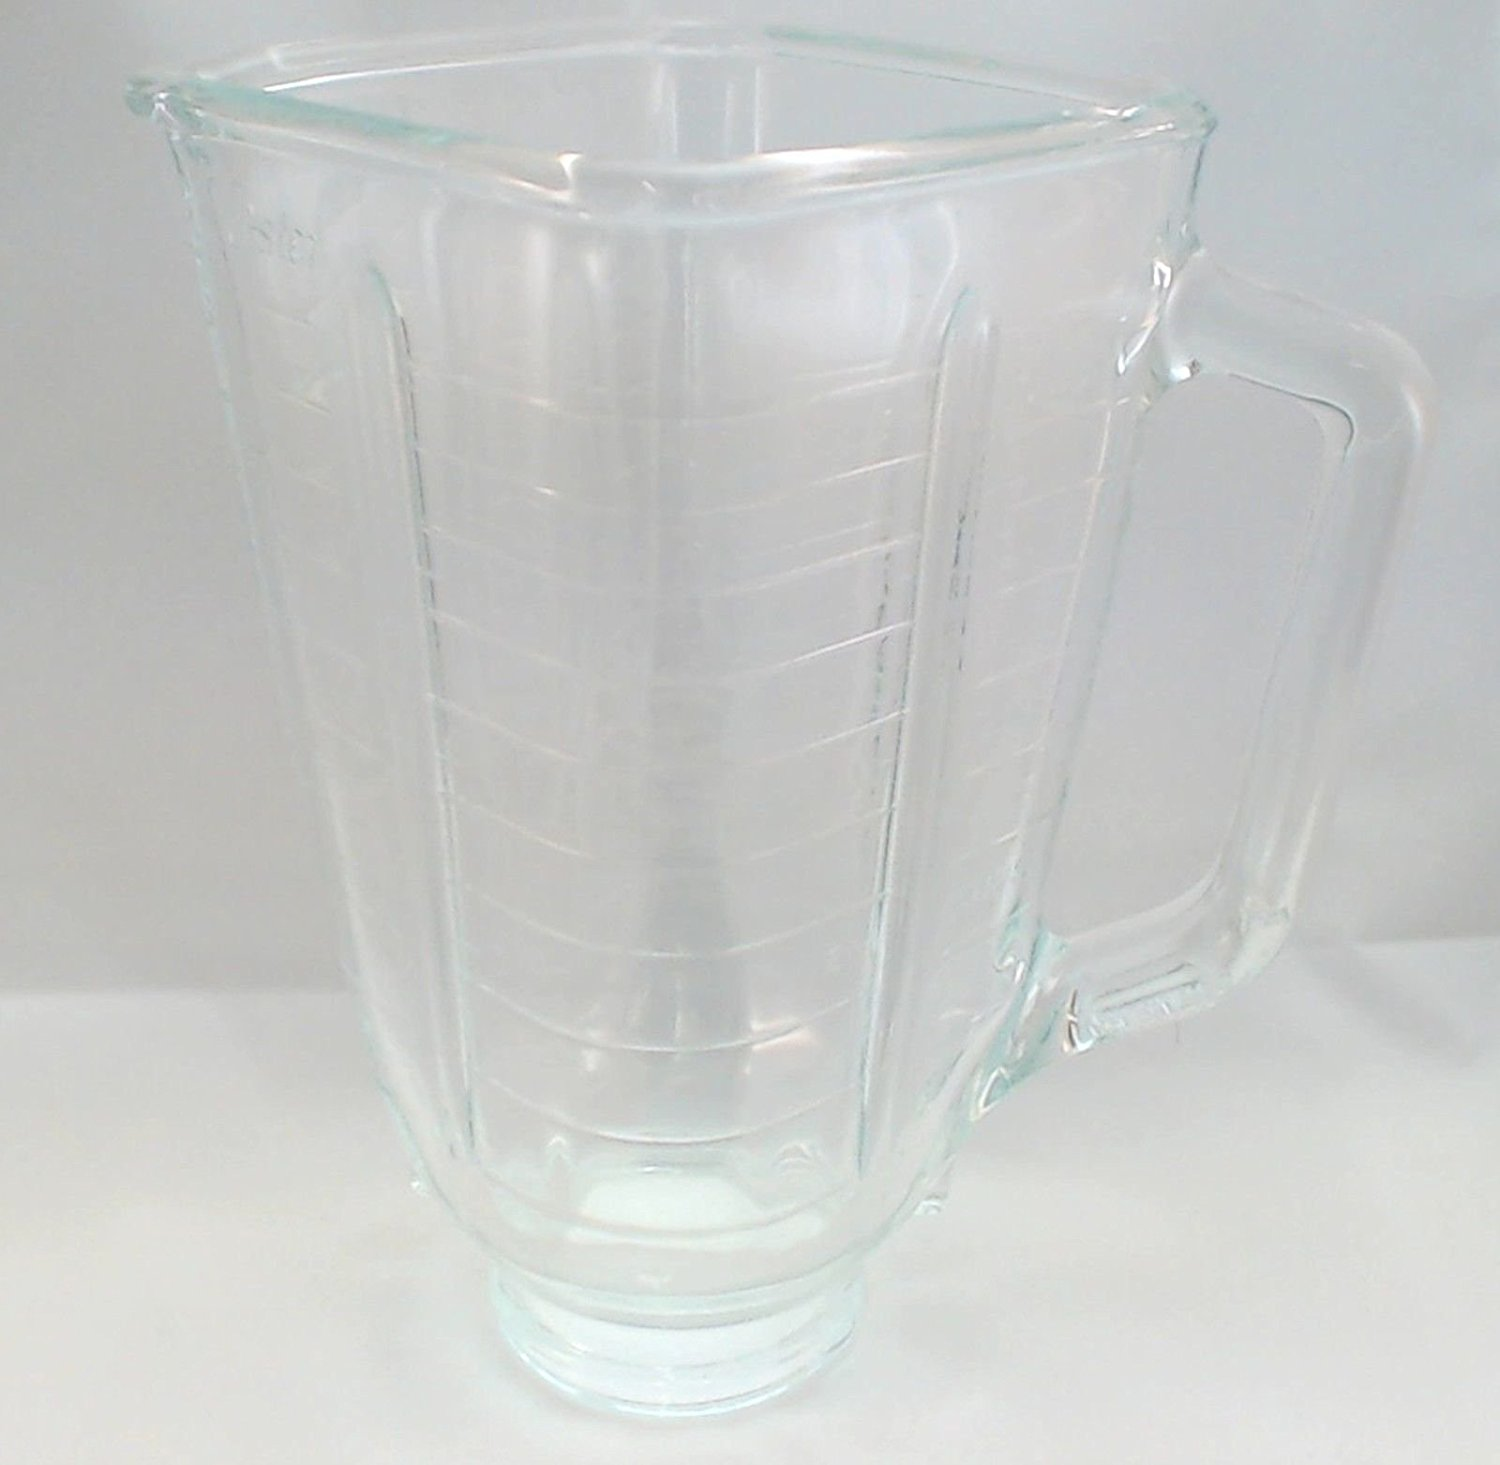 025843-000-000 Blender Glass Jar (Square Top), Ship from USA,Brand Oster